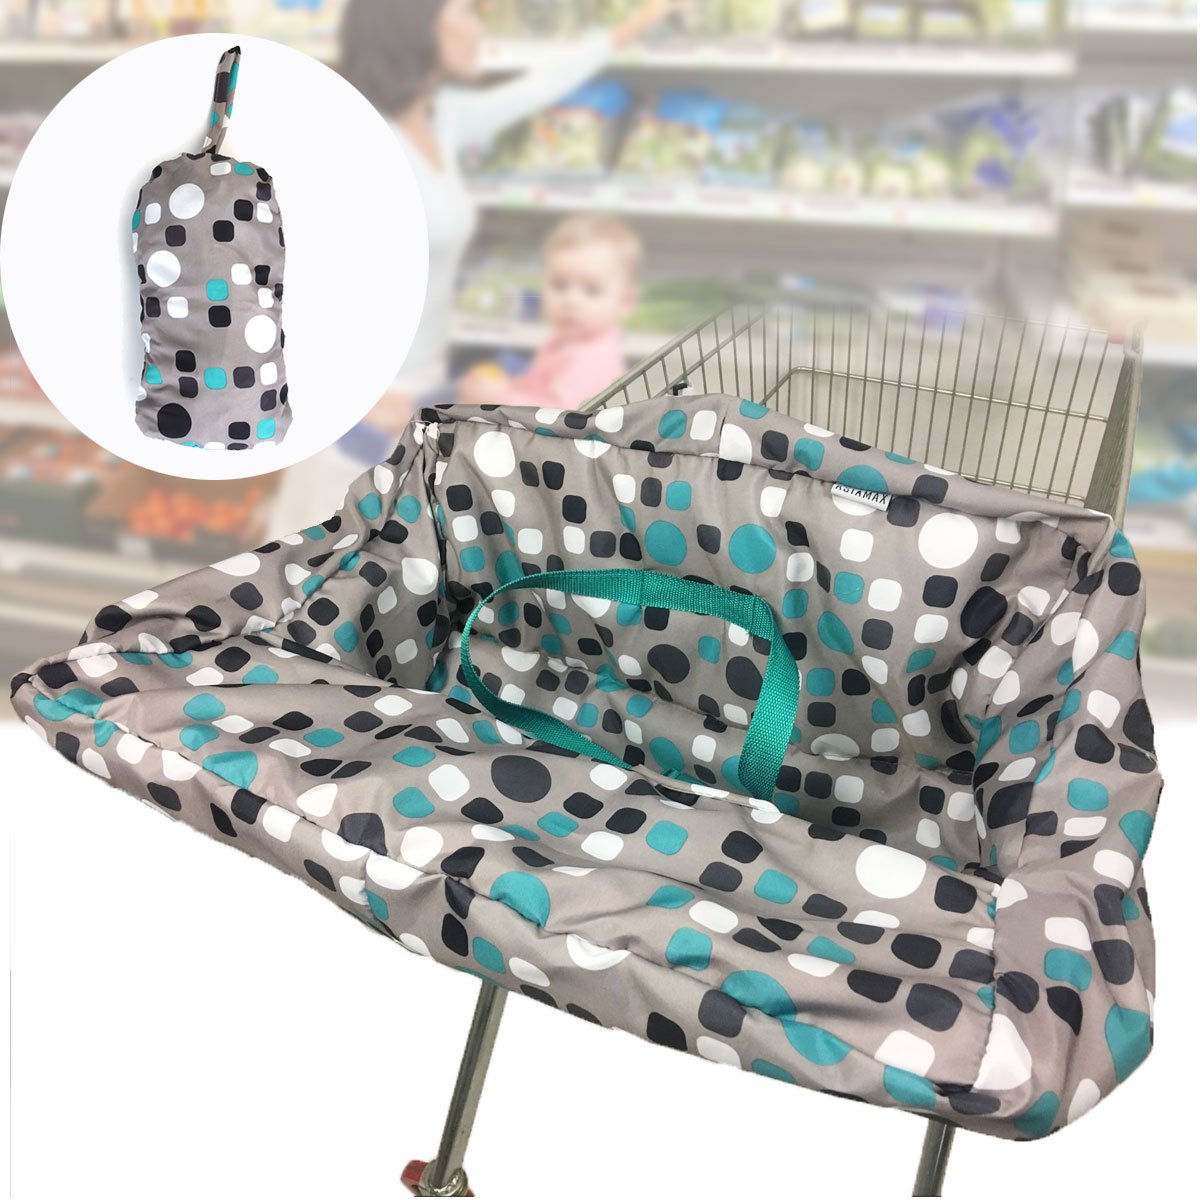 Bioby Baby Seat Pad Cover Infant Supermarket Shopping Cart Cover Anti-dirty Kids Traveling Seat Cushion For High Chair